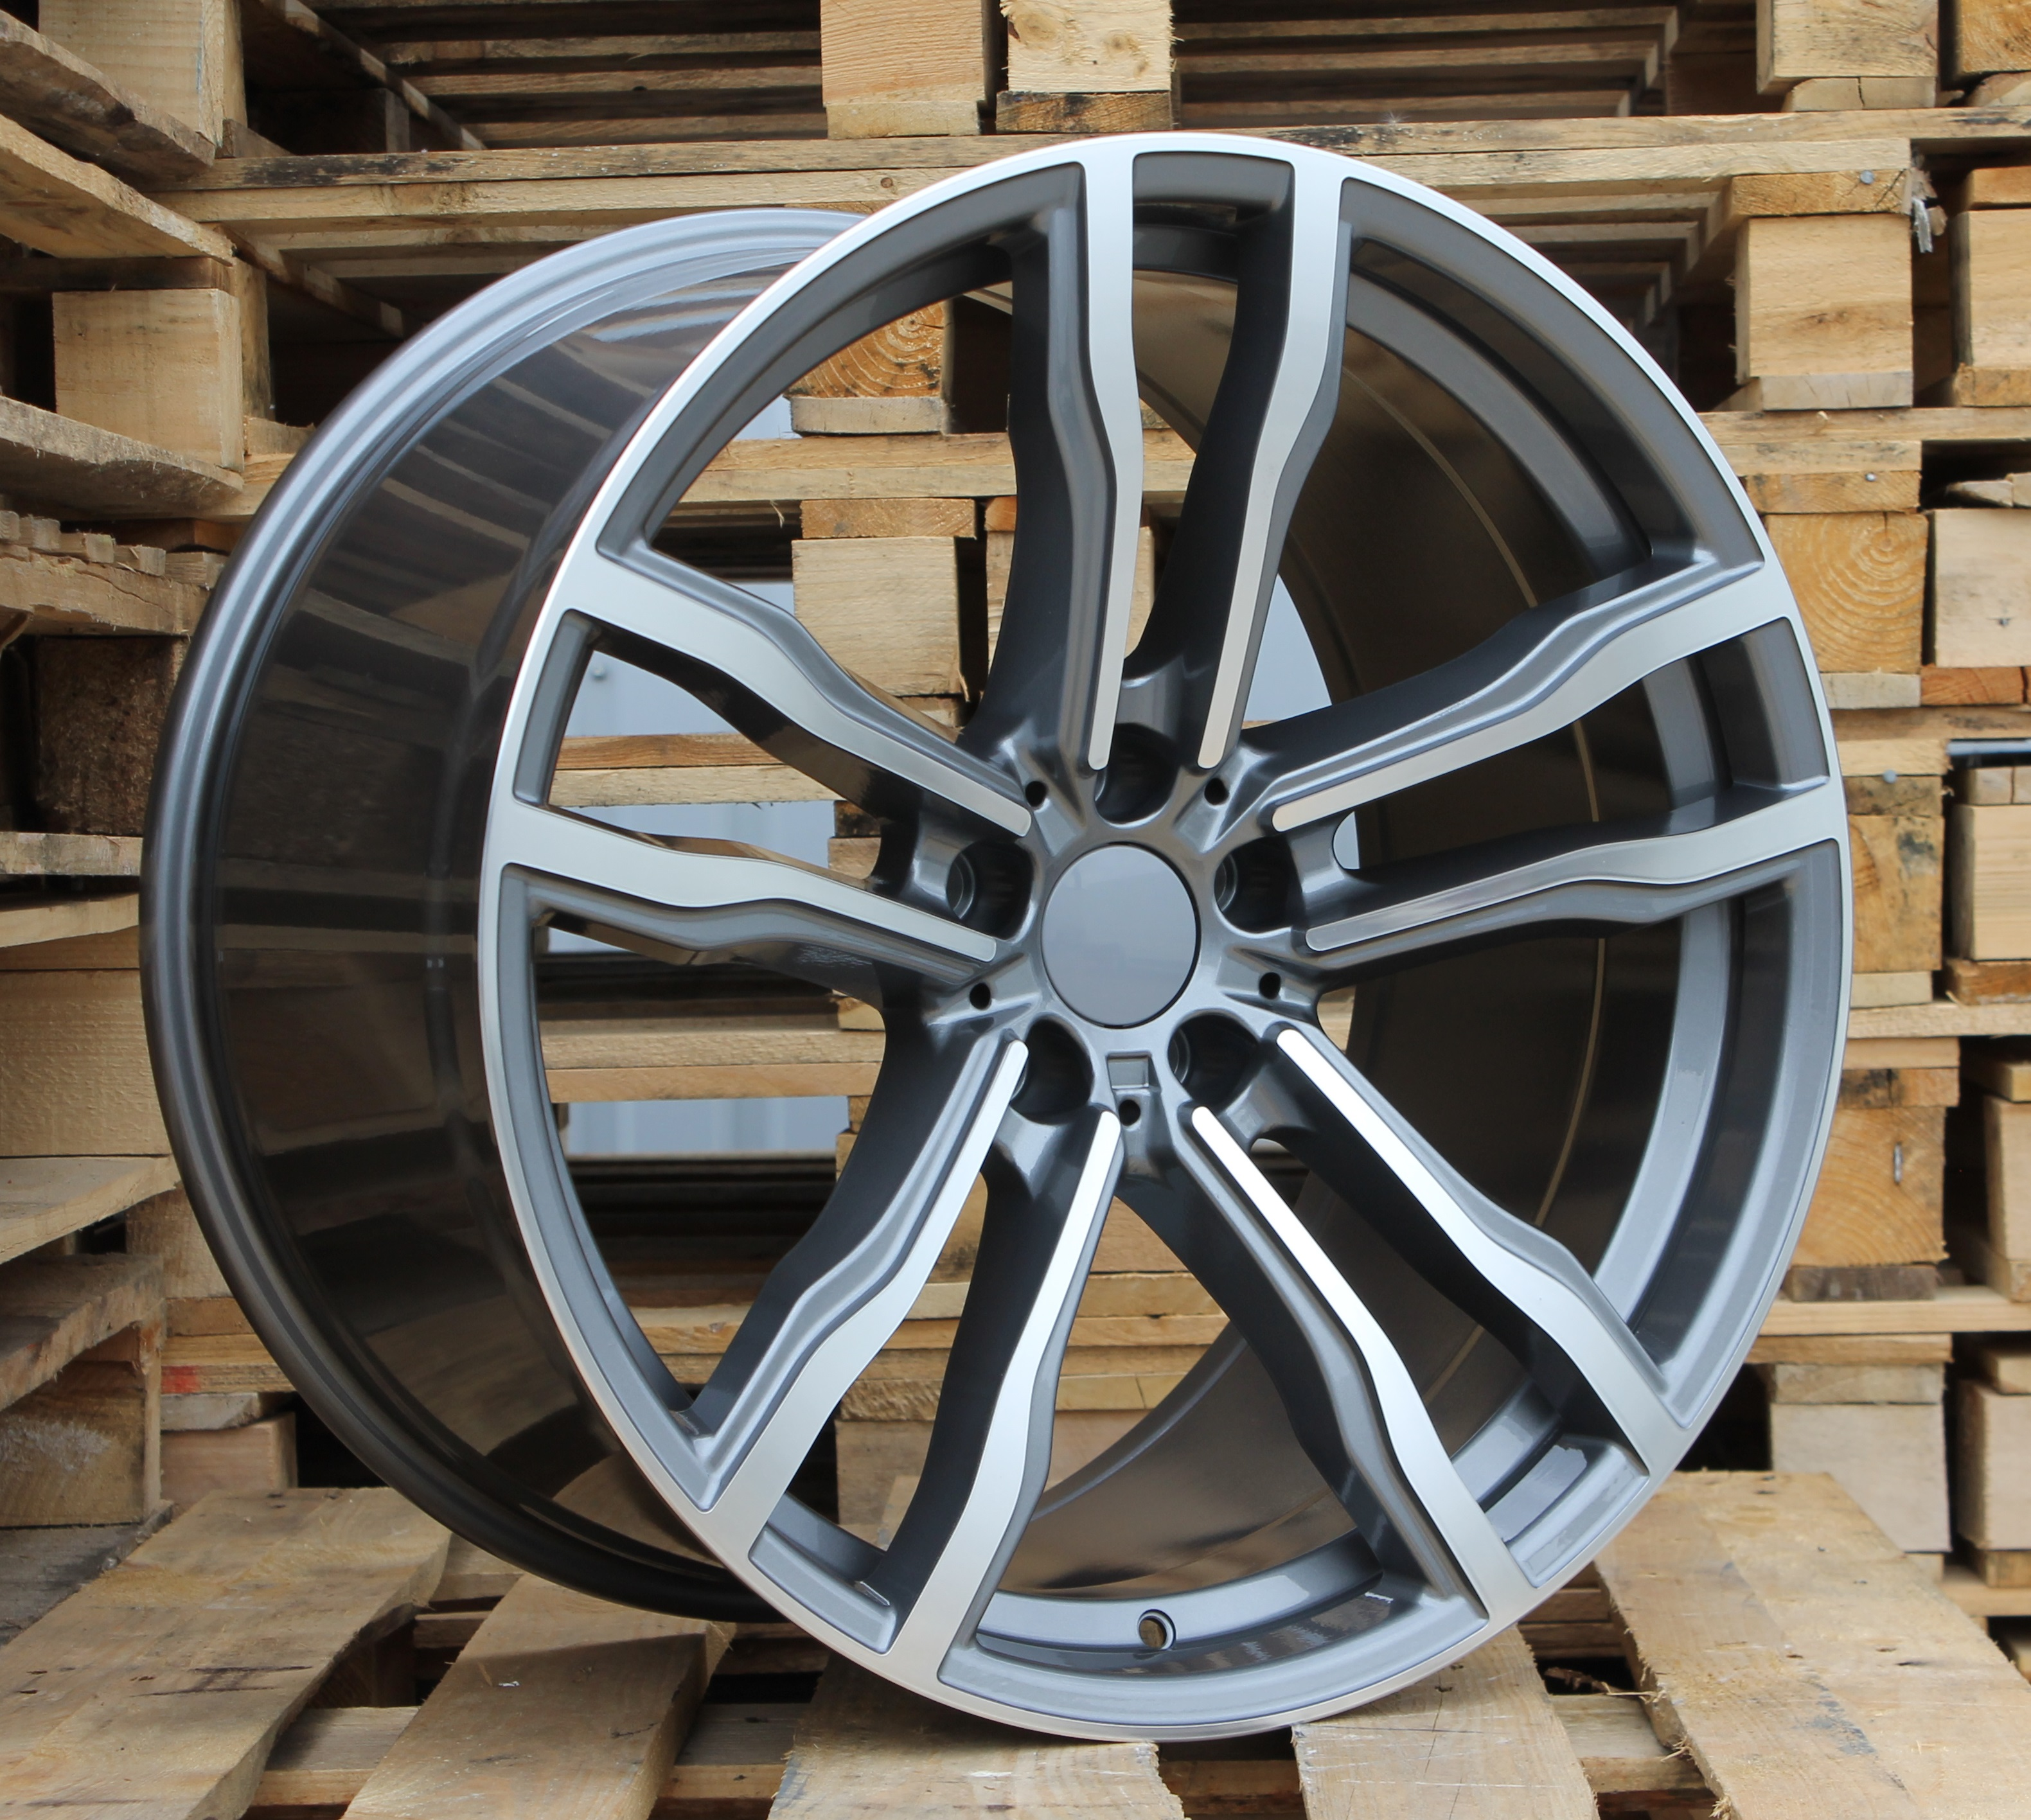 B19X8.5 5X120 ET30 72.6 BY588 MG+Powder coating (Rear+Front) RWR BM (+3eur) (K4) 8.5x19 ET30 5x120